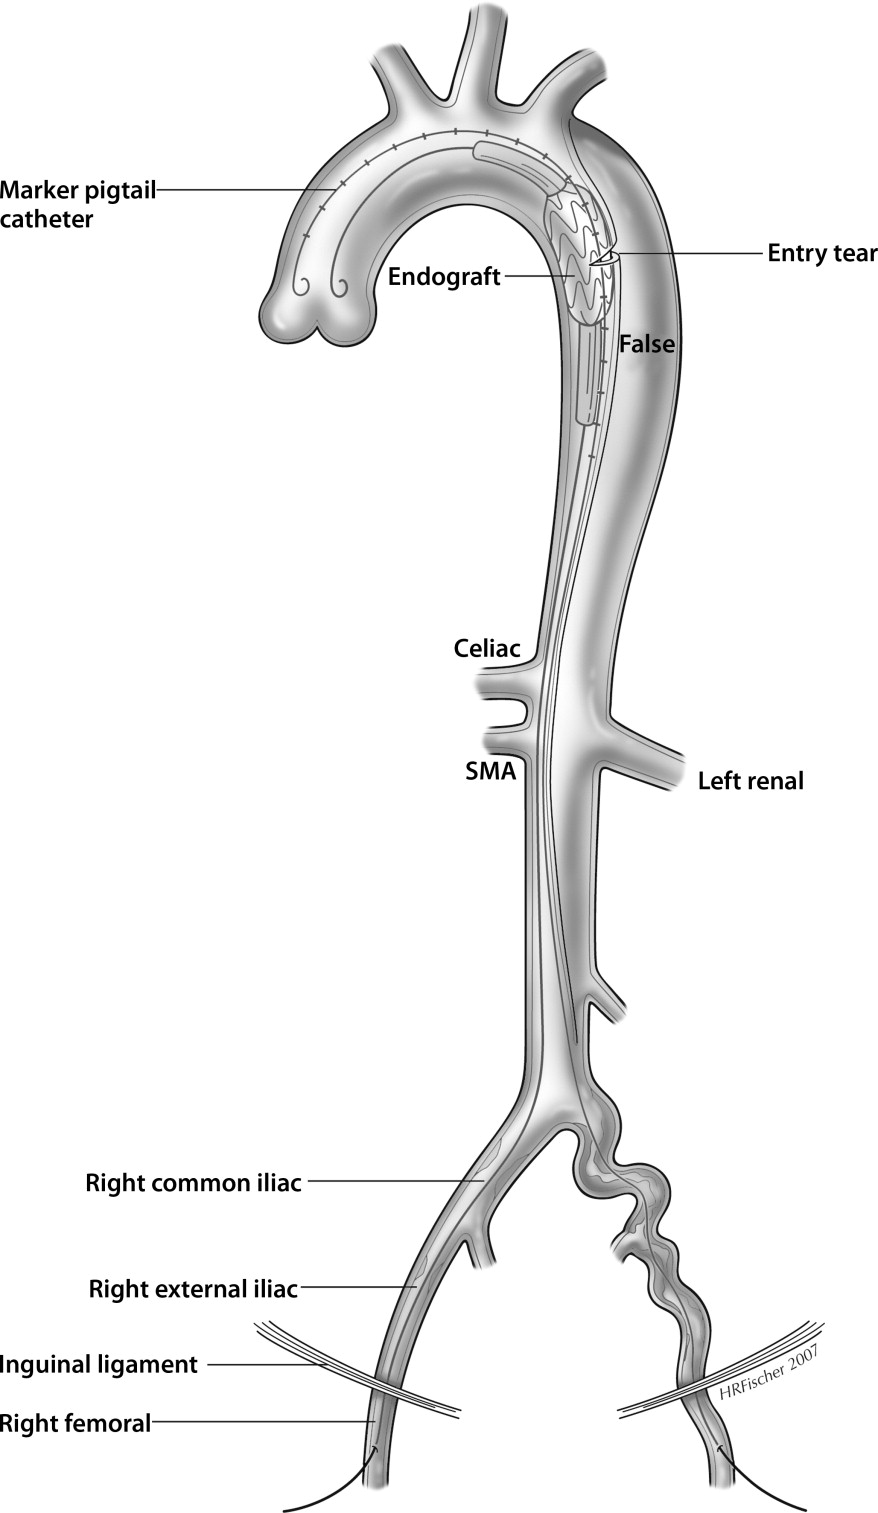 Endovascular Therapy for Malperfusion in Acute Type B